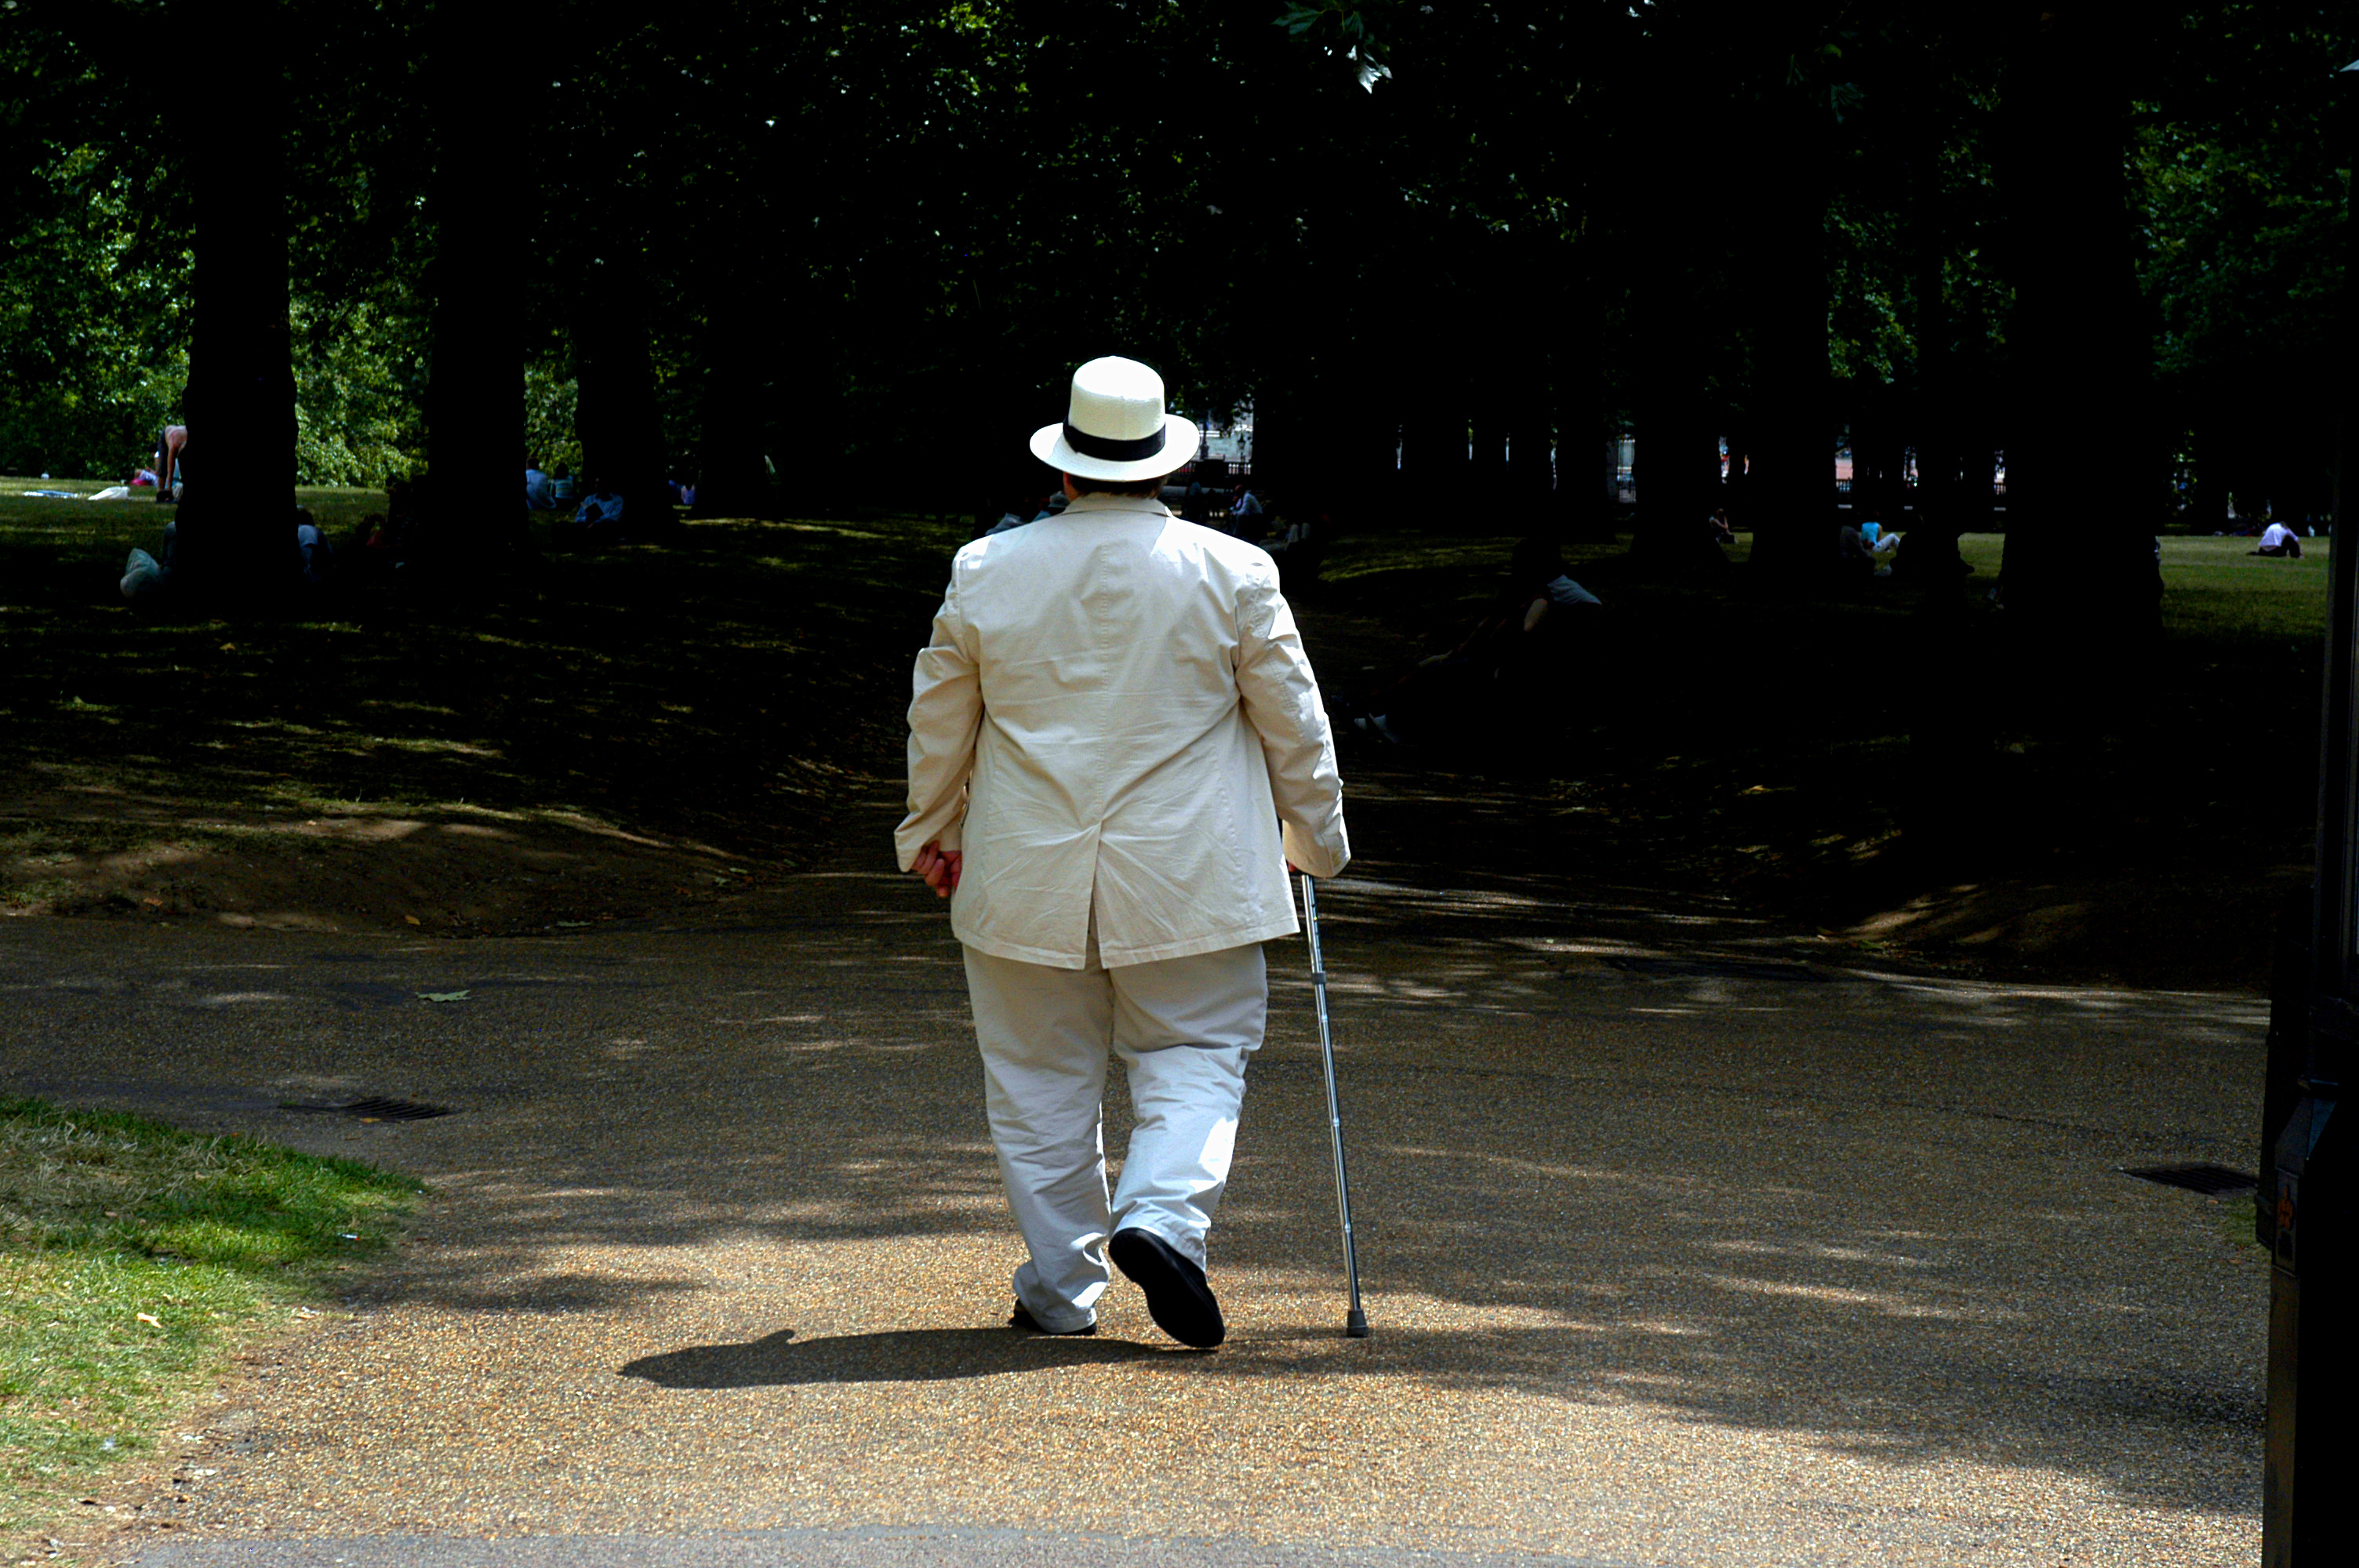 White Suit, Green Park